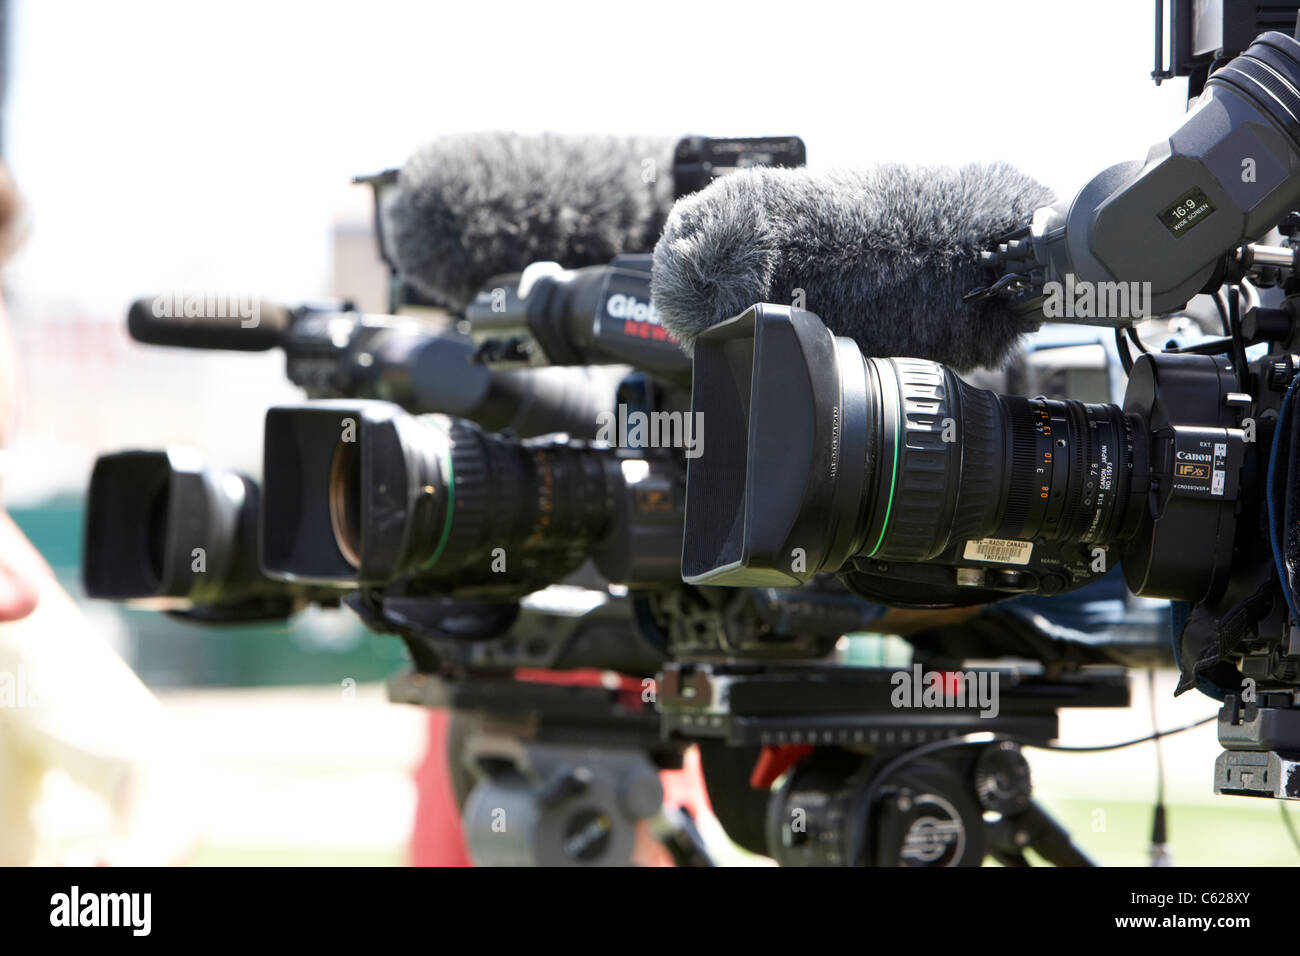 tv camera crews cameras on tripods with mics regina canada - Stock Image